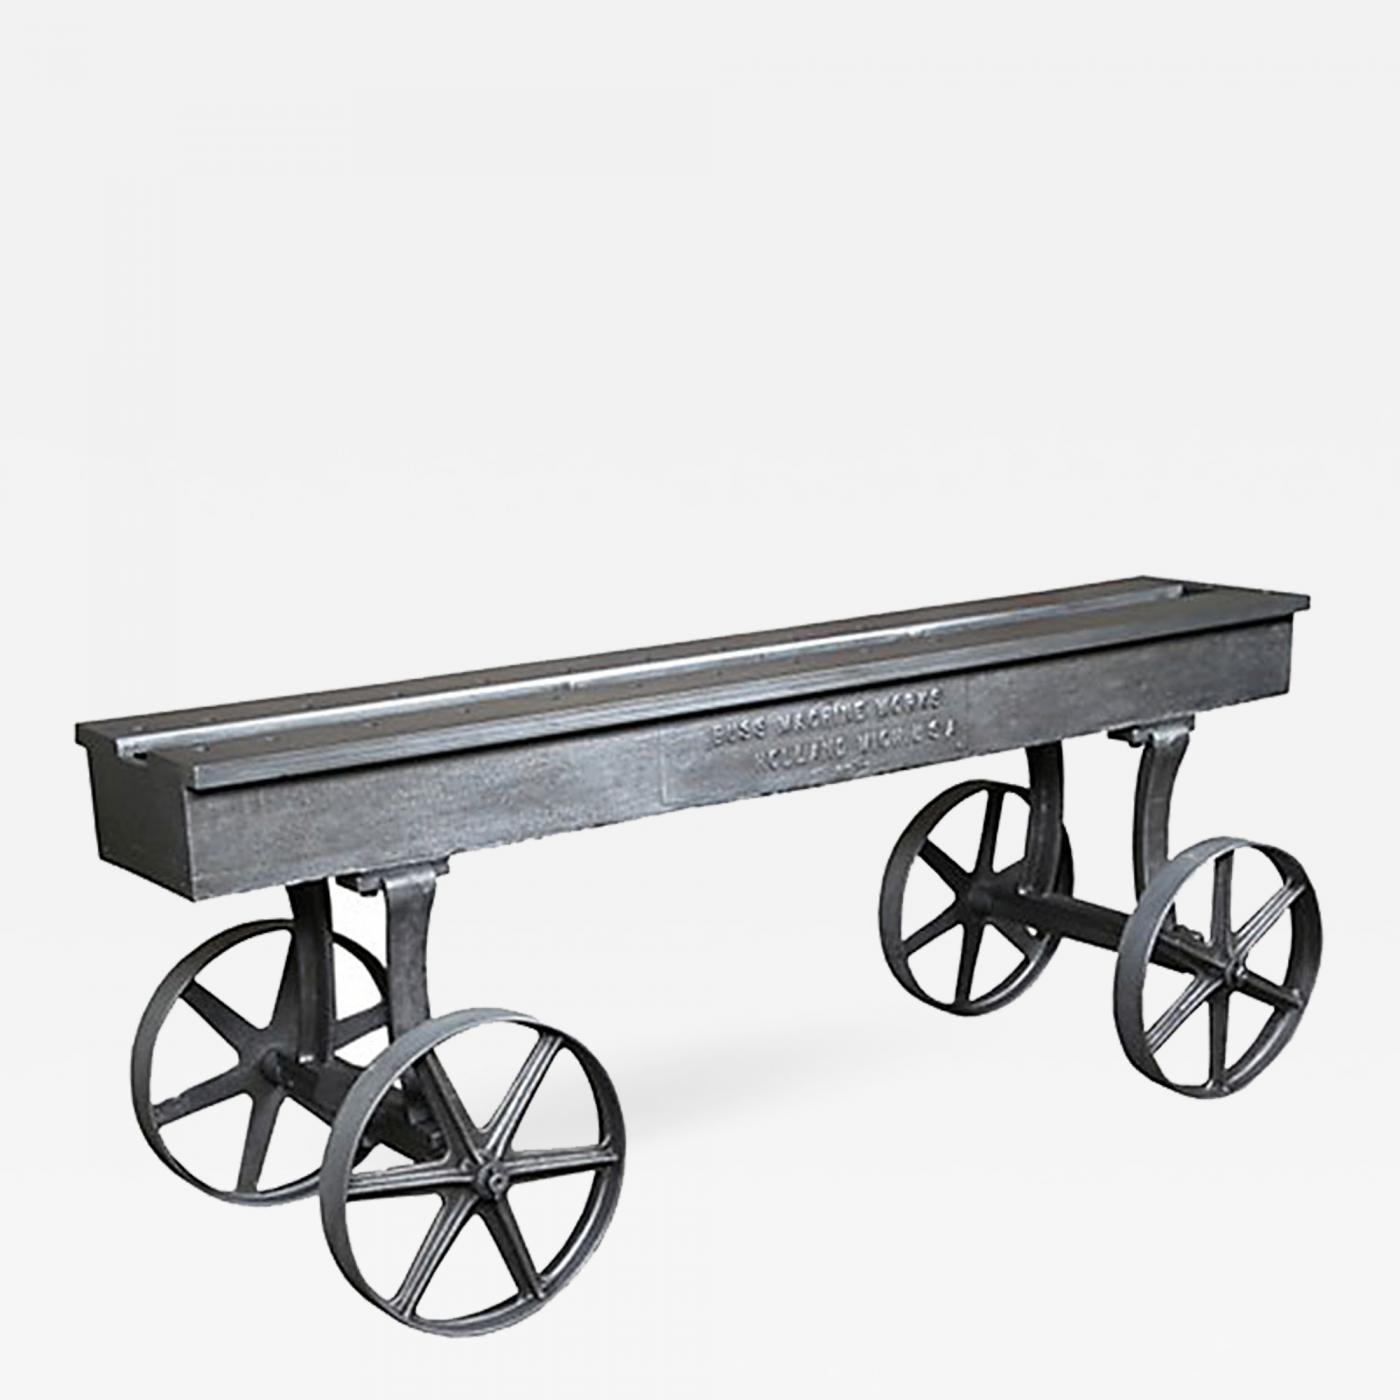 Vintage Industrial Conference Console Dining Table Cart - Vintage industrial conference table